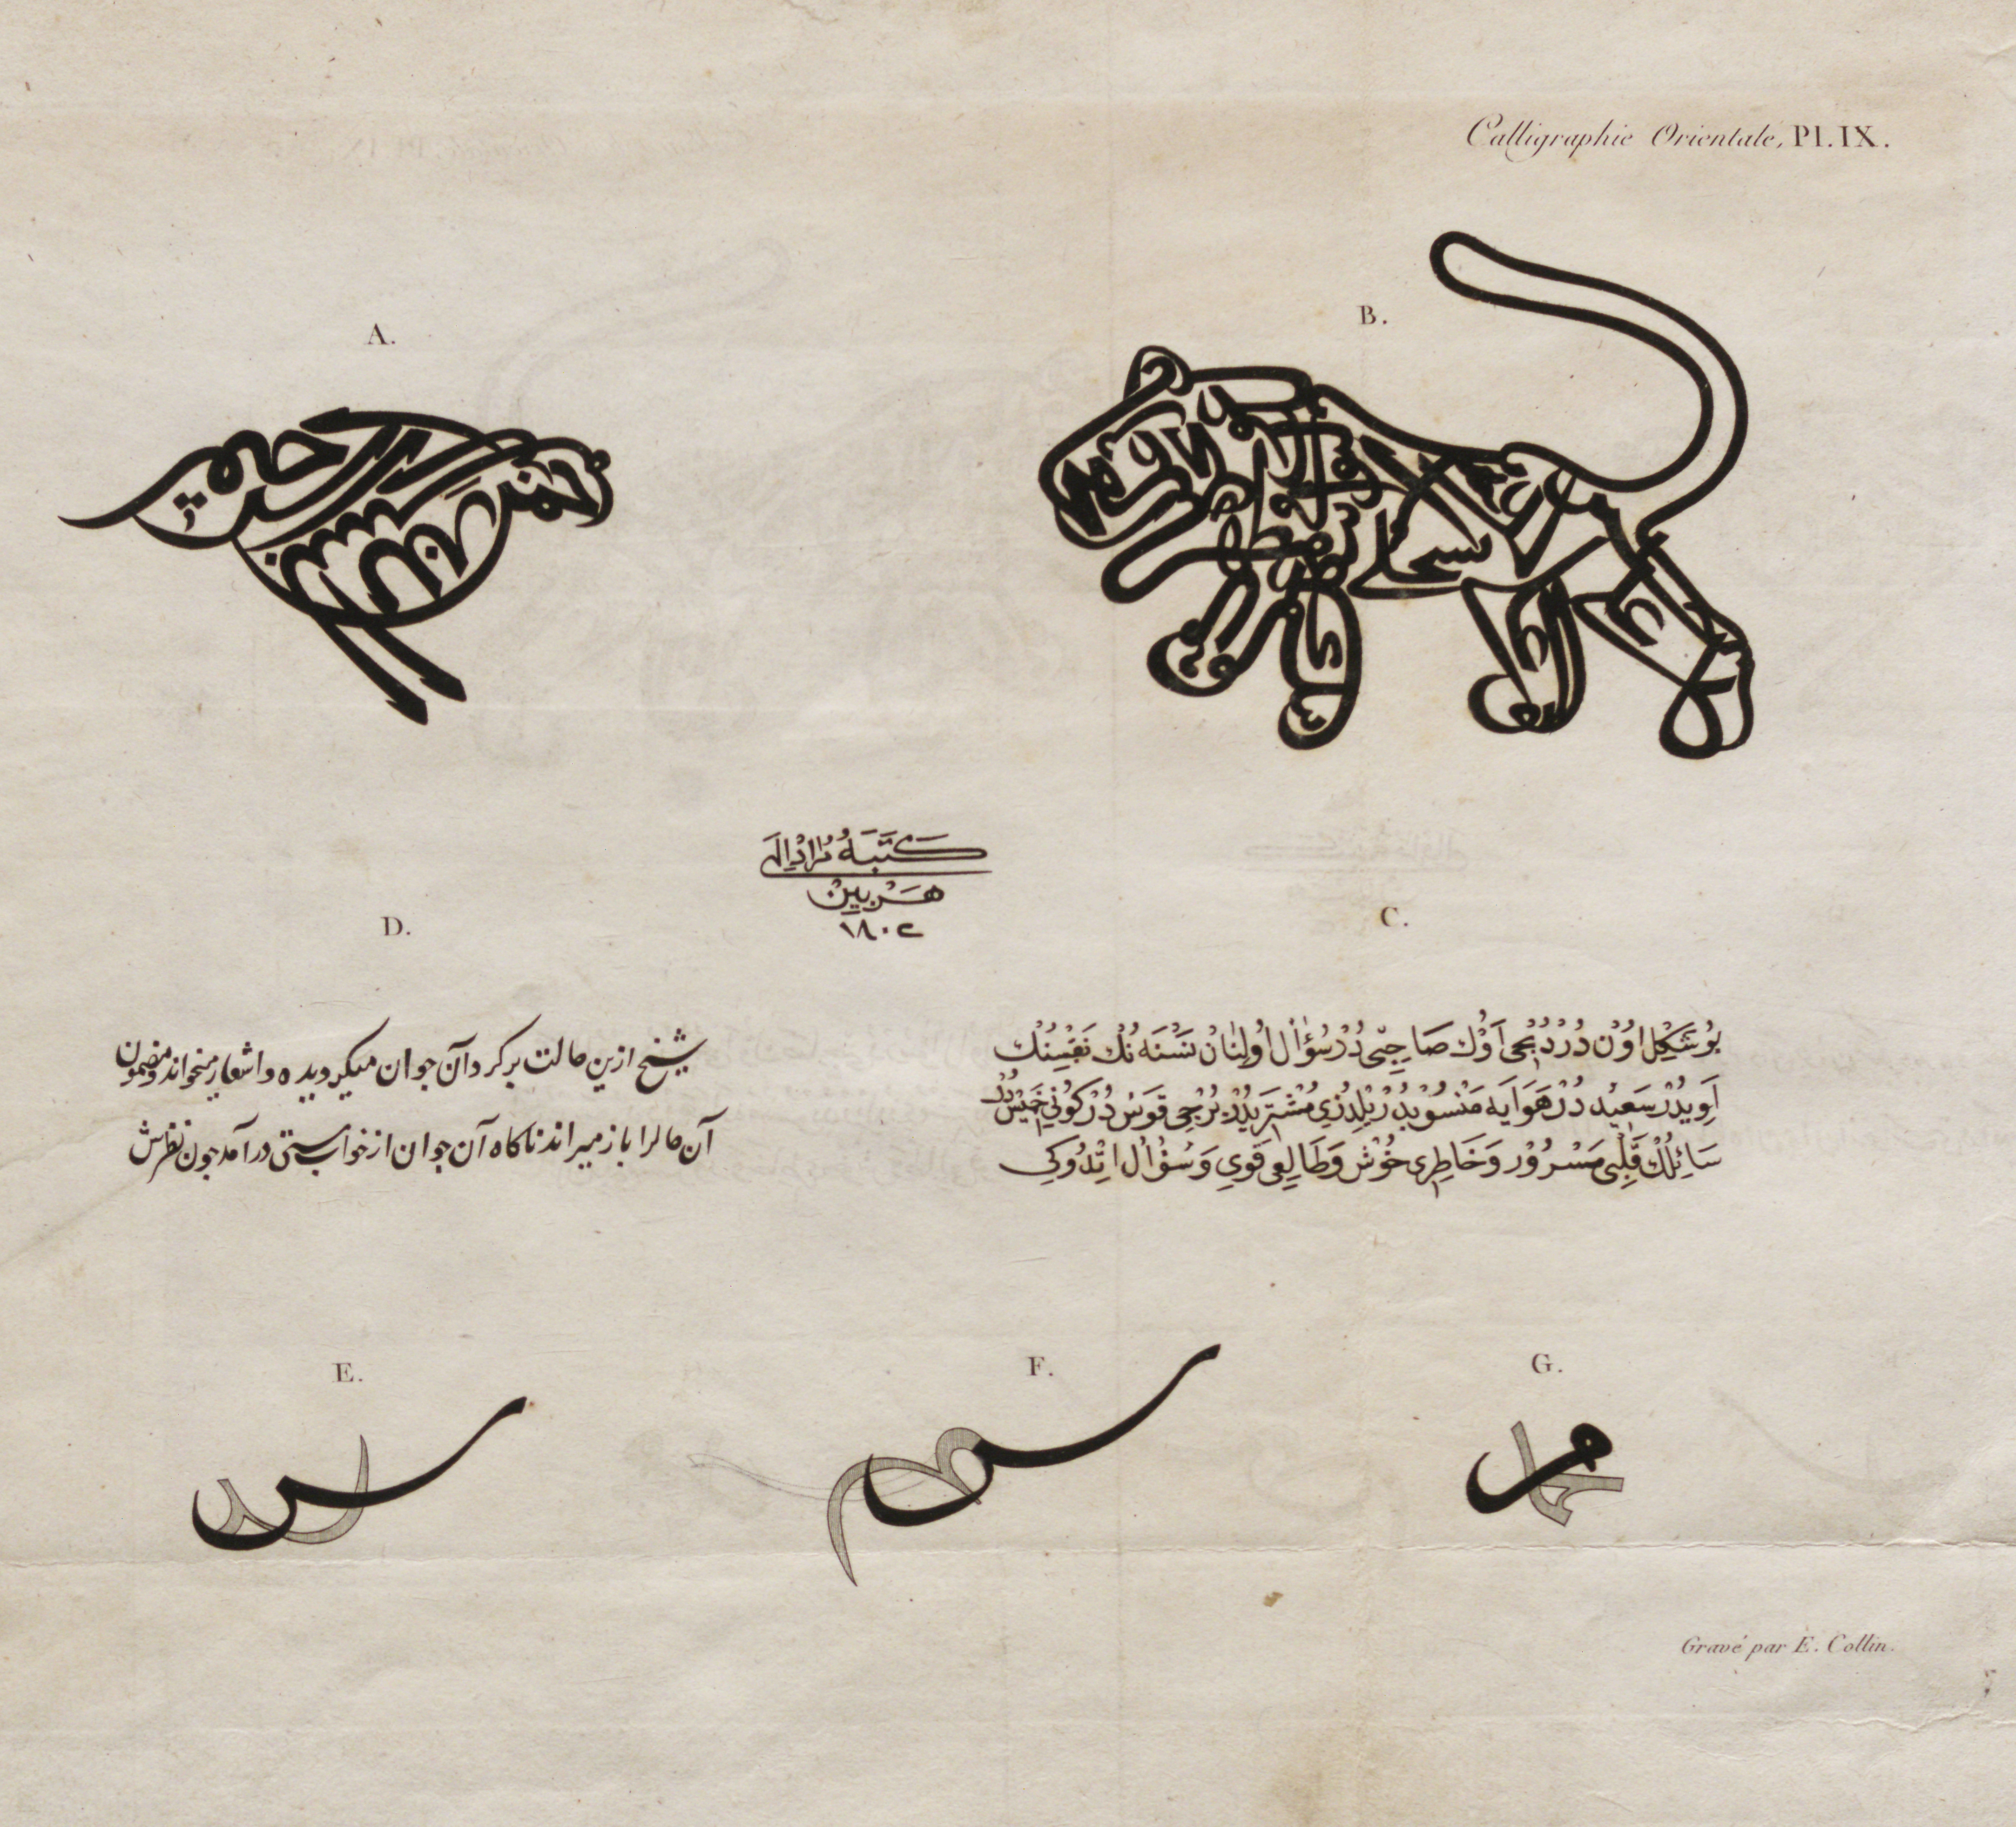 Early Arabic Printed Books from the British Library: Literature, Grammar, Language, Catalogues and Periodicals